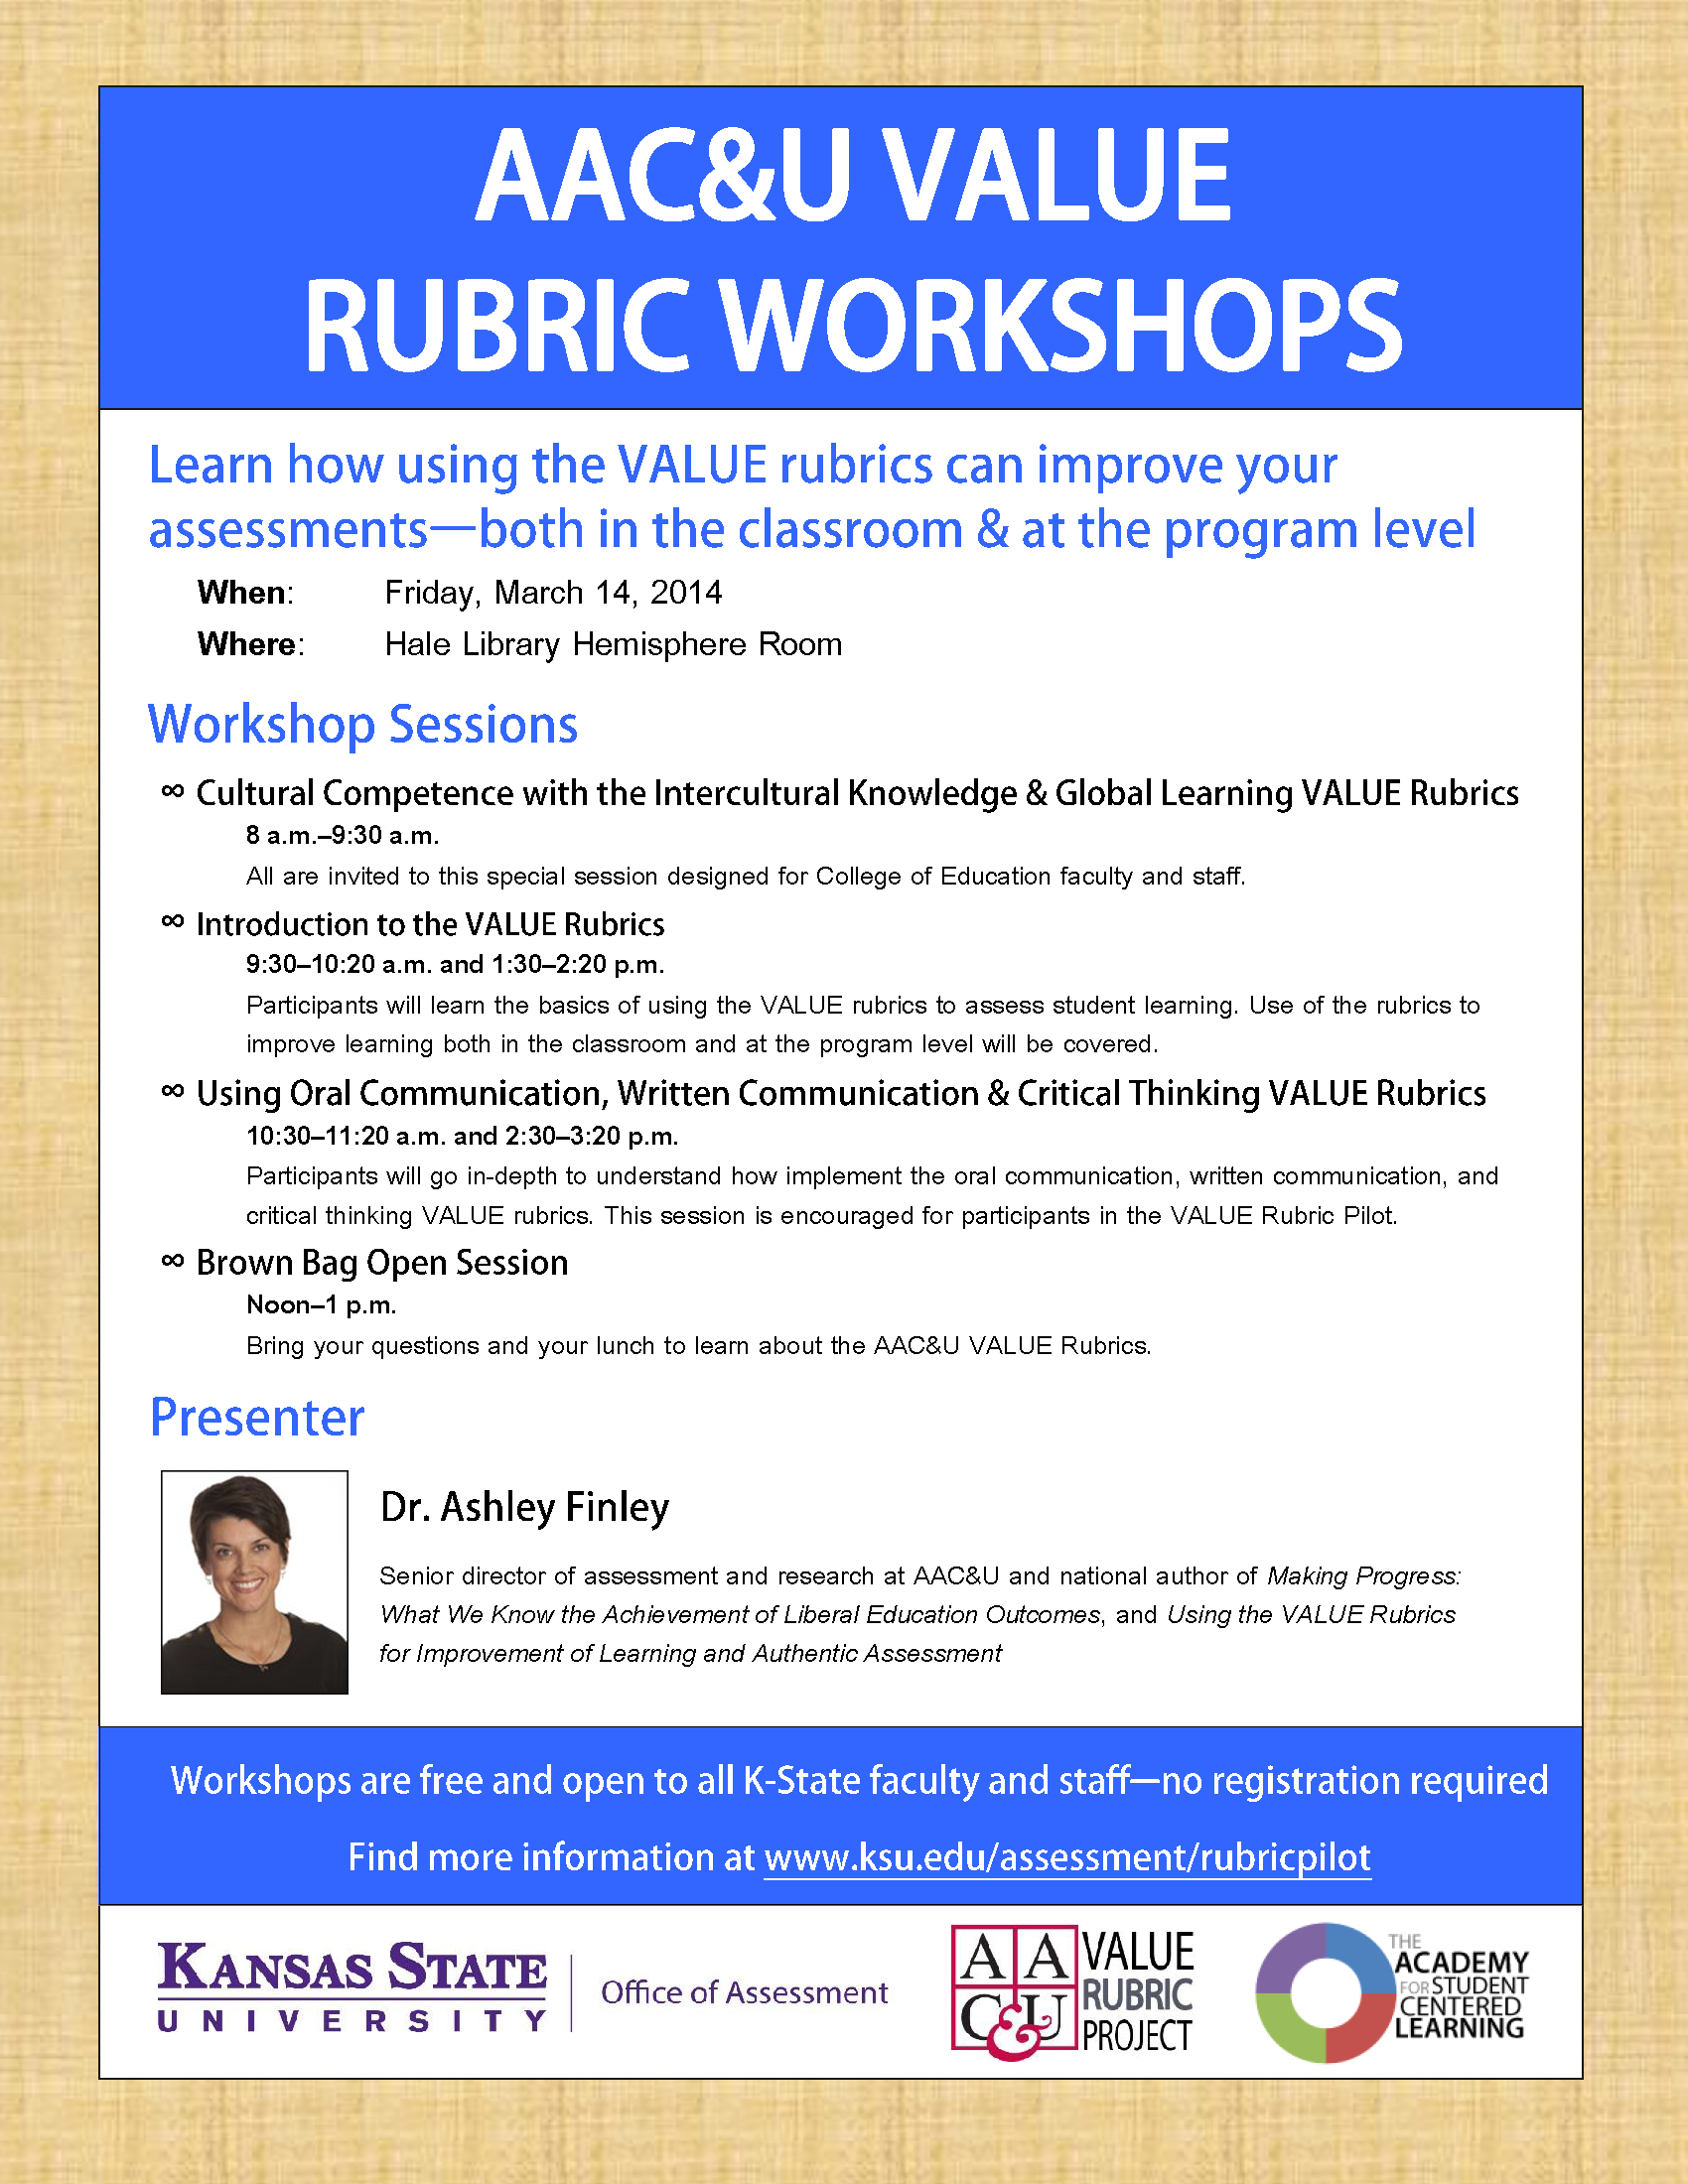 value rubric flyer thumbnail